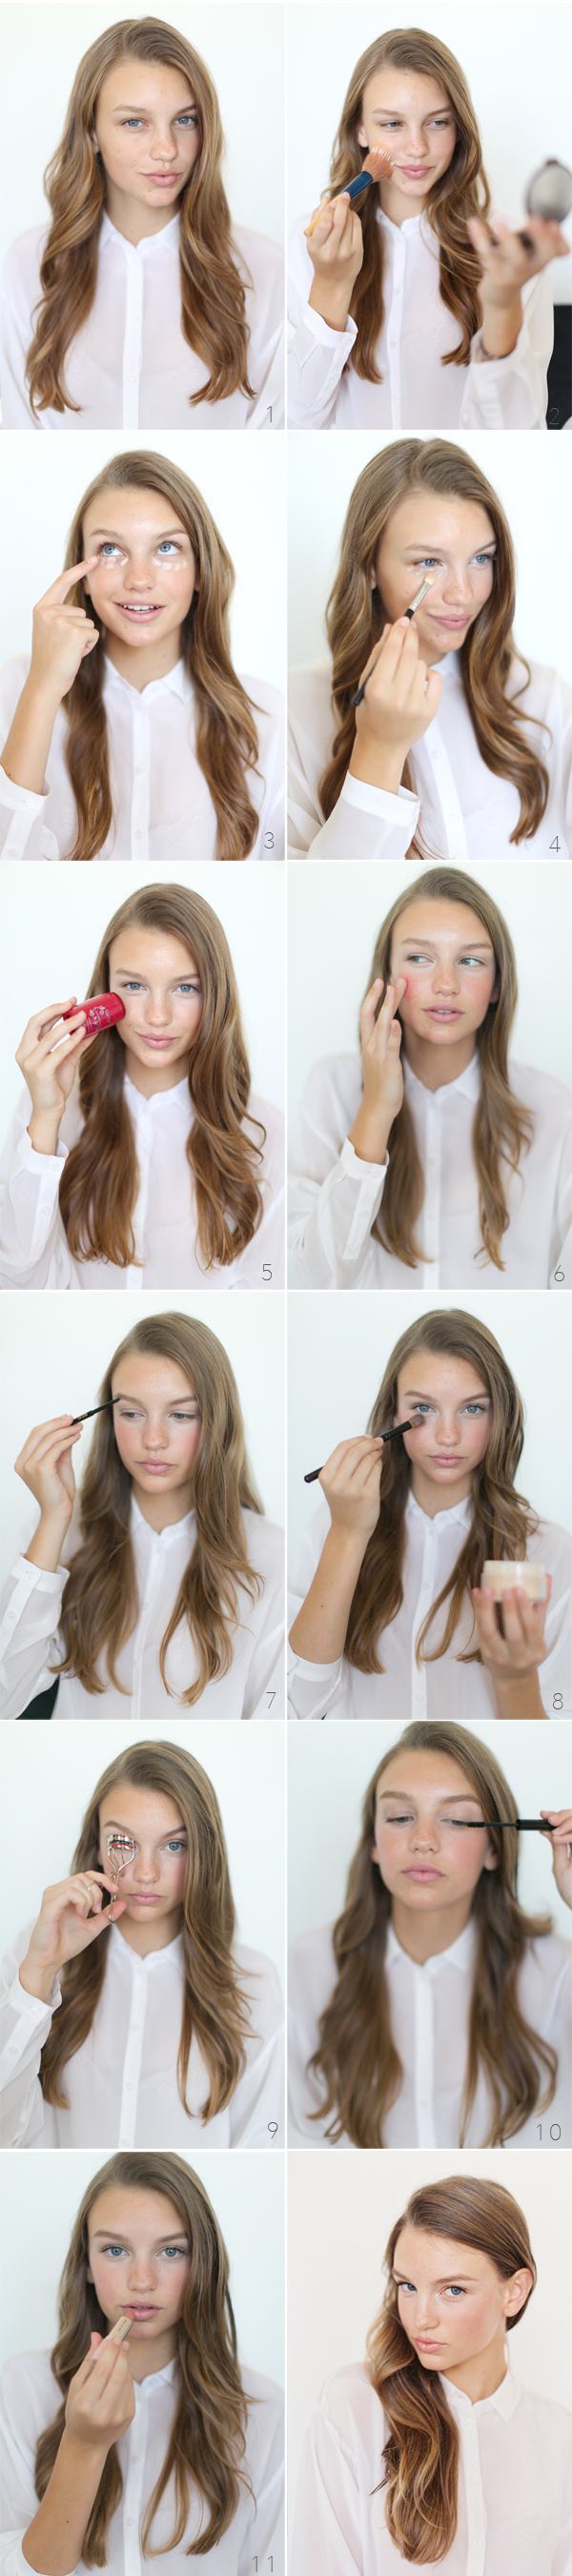 The 5 Minute Face Beauty Tutorial Once Wed